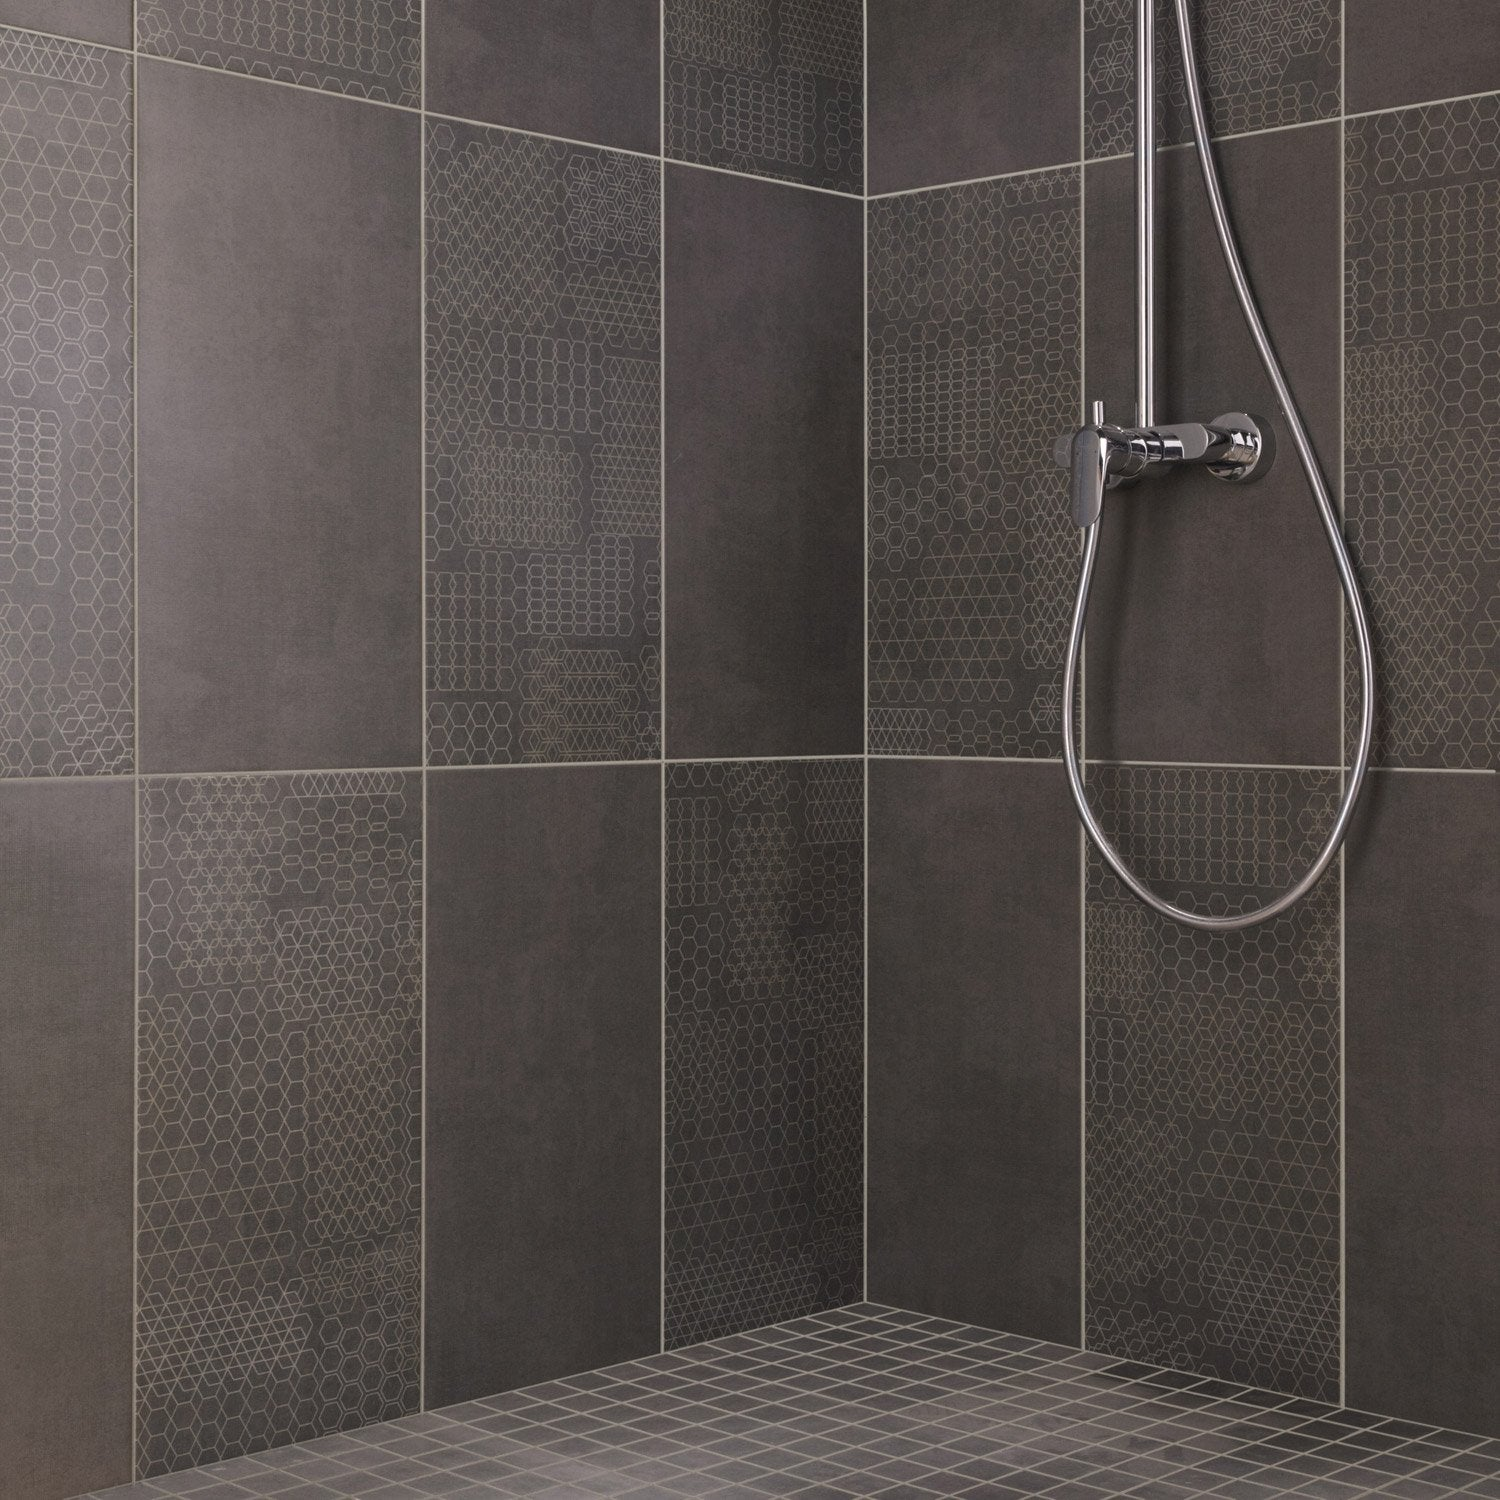 Fa ence mur anthracite tweed x cm leroy merlin for Carrelage antiderapant salle de bain